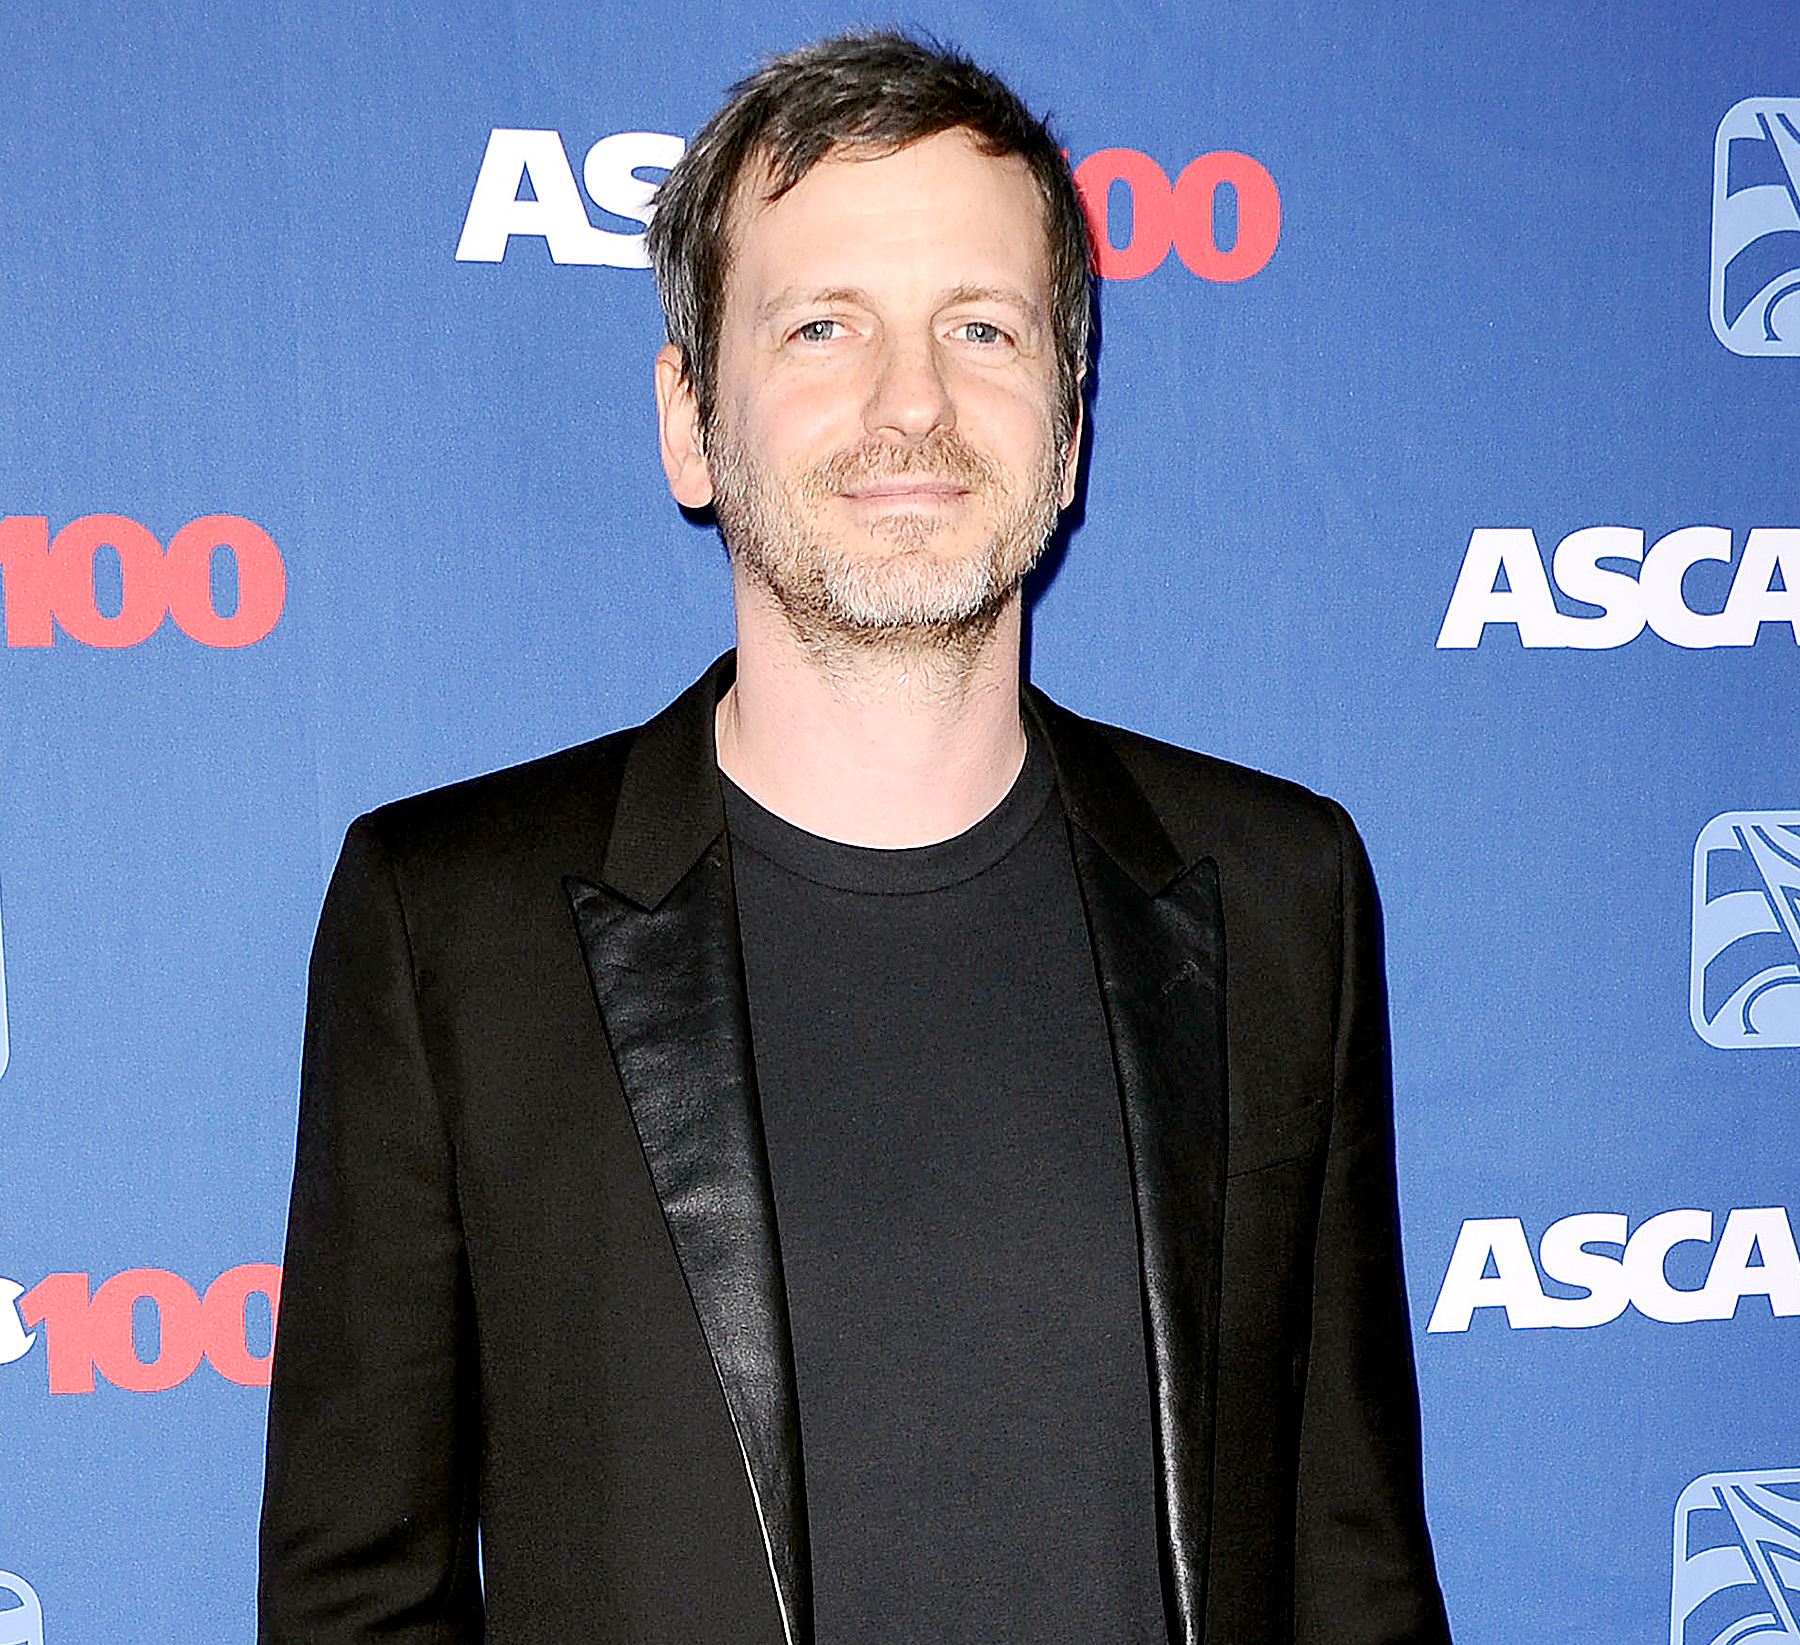 Dr. Luke attends the 31st annual ASCAP Pop Music Awards at The Ray Dolby Ballroom at Hollywood & Highland Center on April 23, 2014 in Hollywood, California.